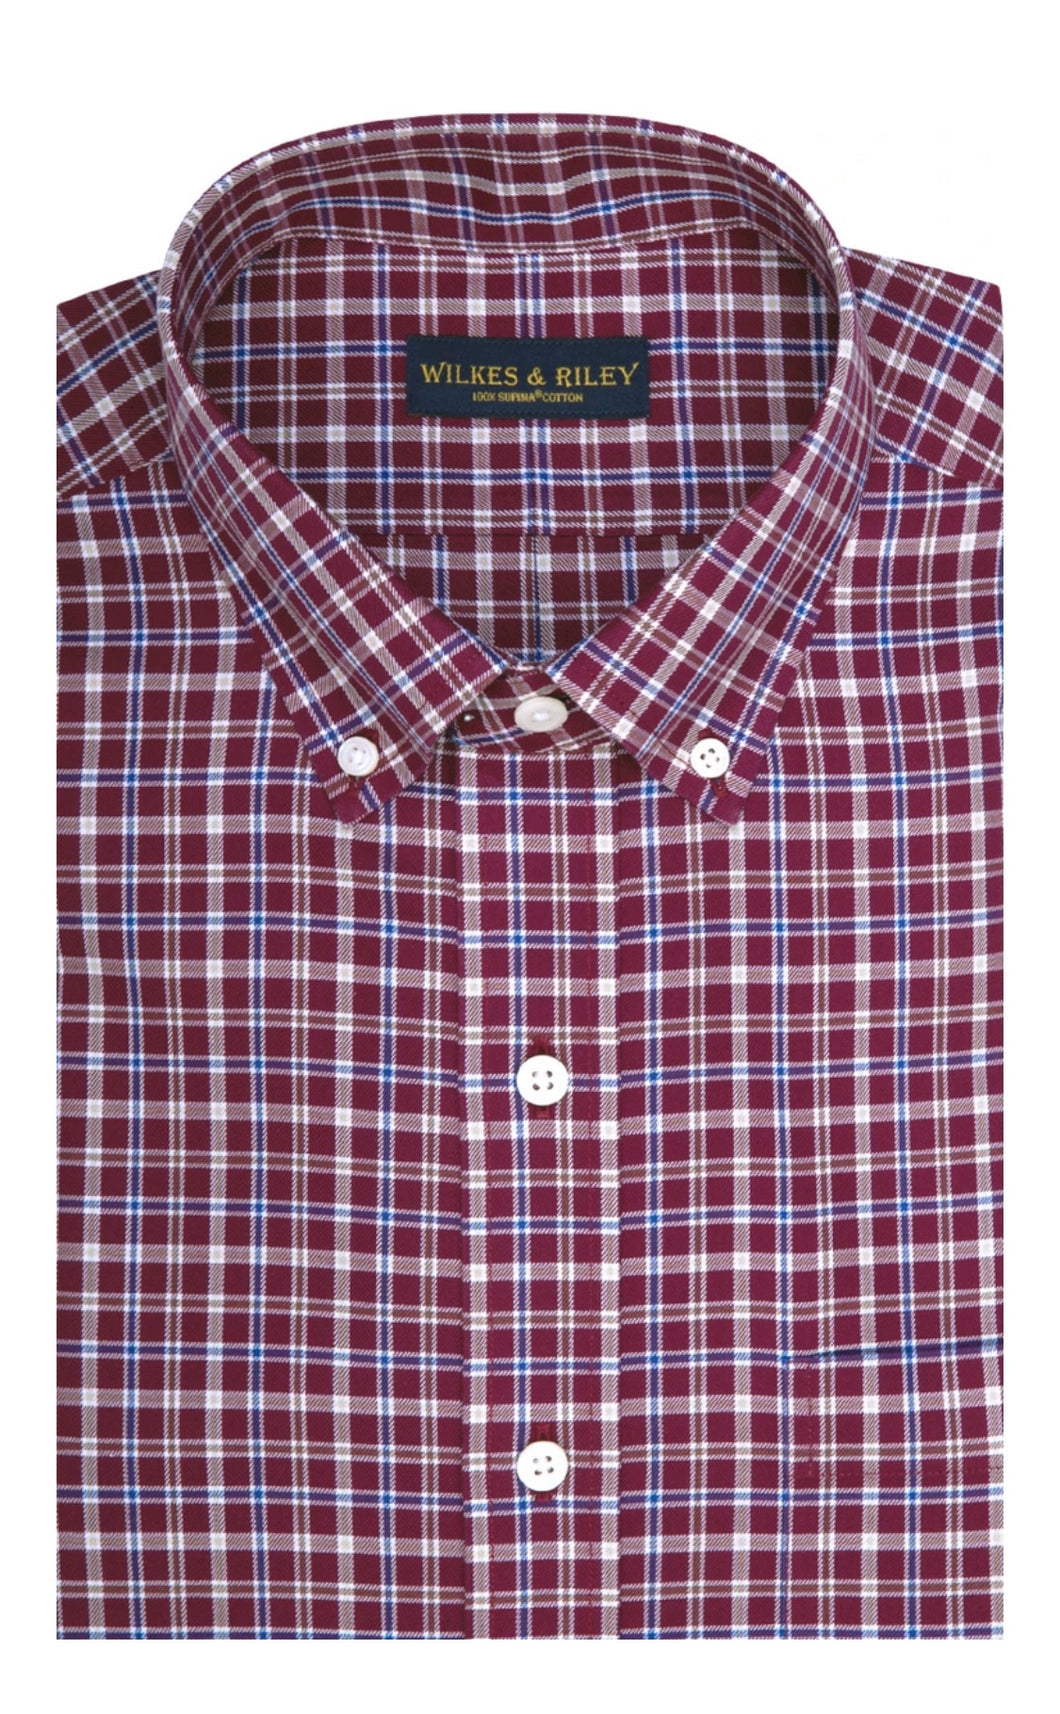 Wilkes & Riley Multi Plaid Twill